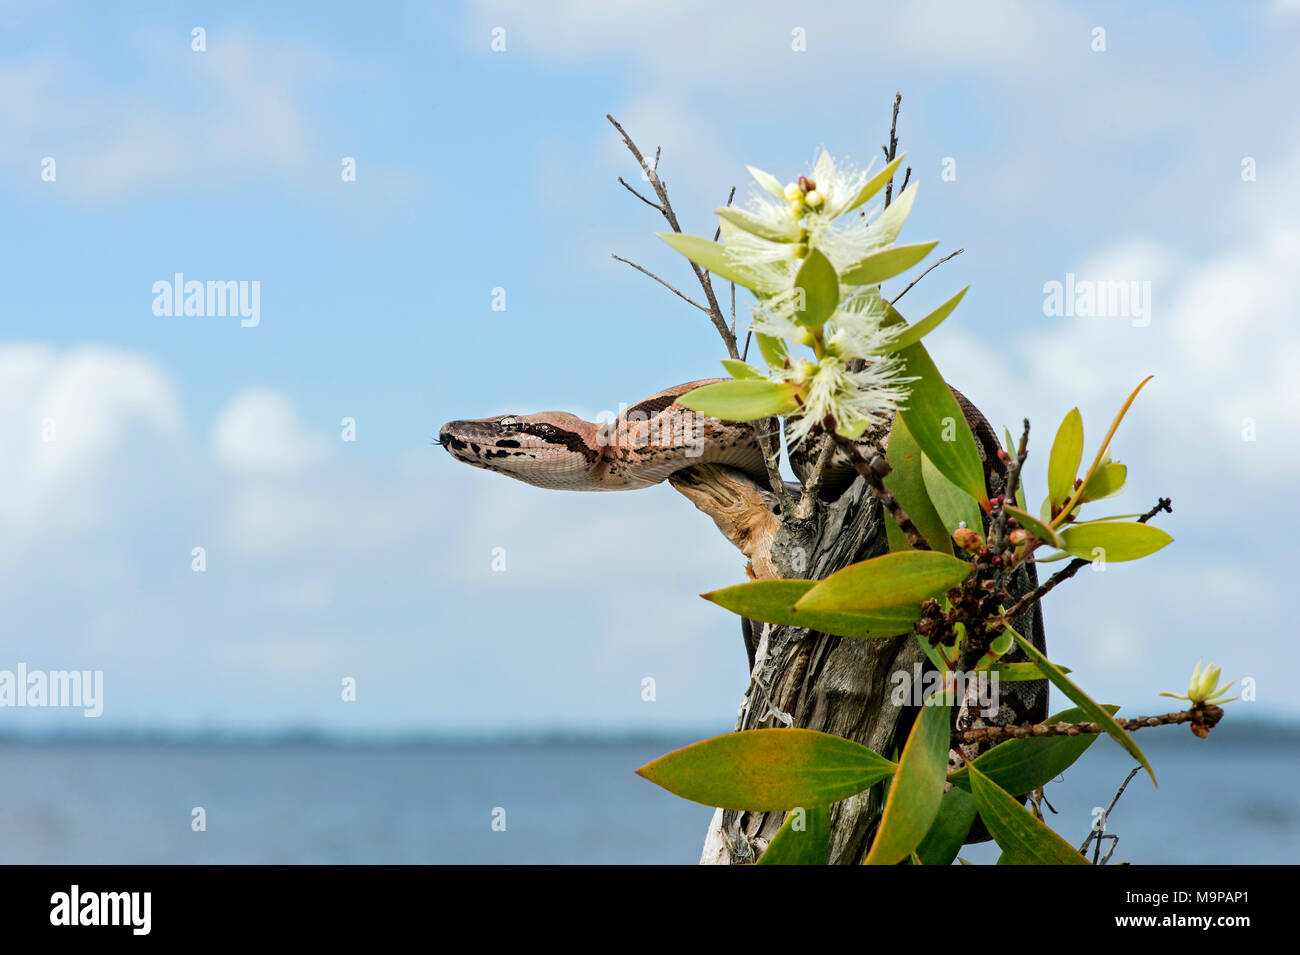 Malagasy ground boa (Acrantophis madagascariensis) young animal on blooming tree stump, Akanin Ny Nofy, Madagascar - Stock Image